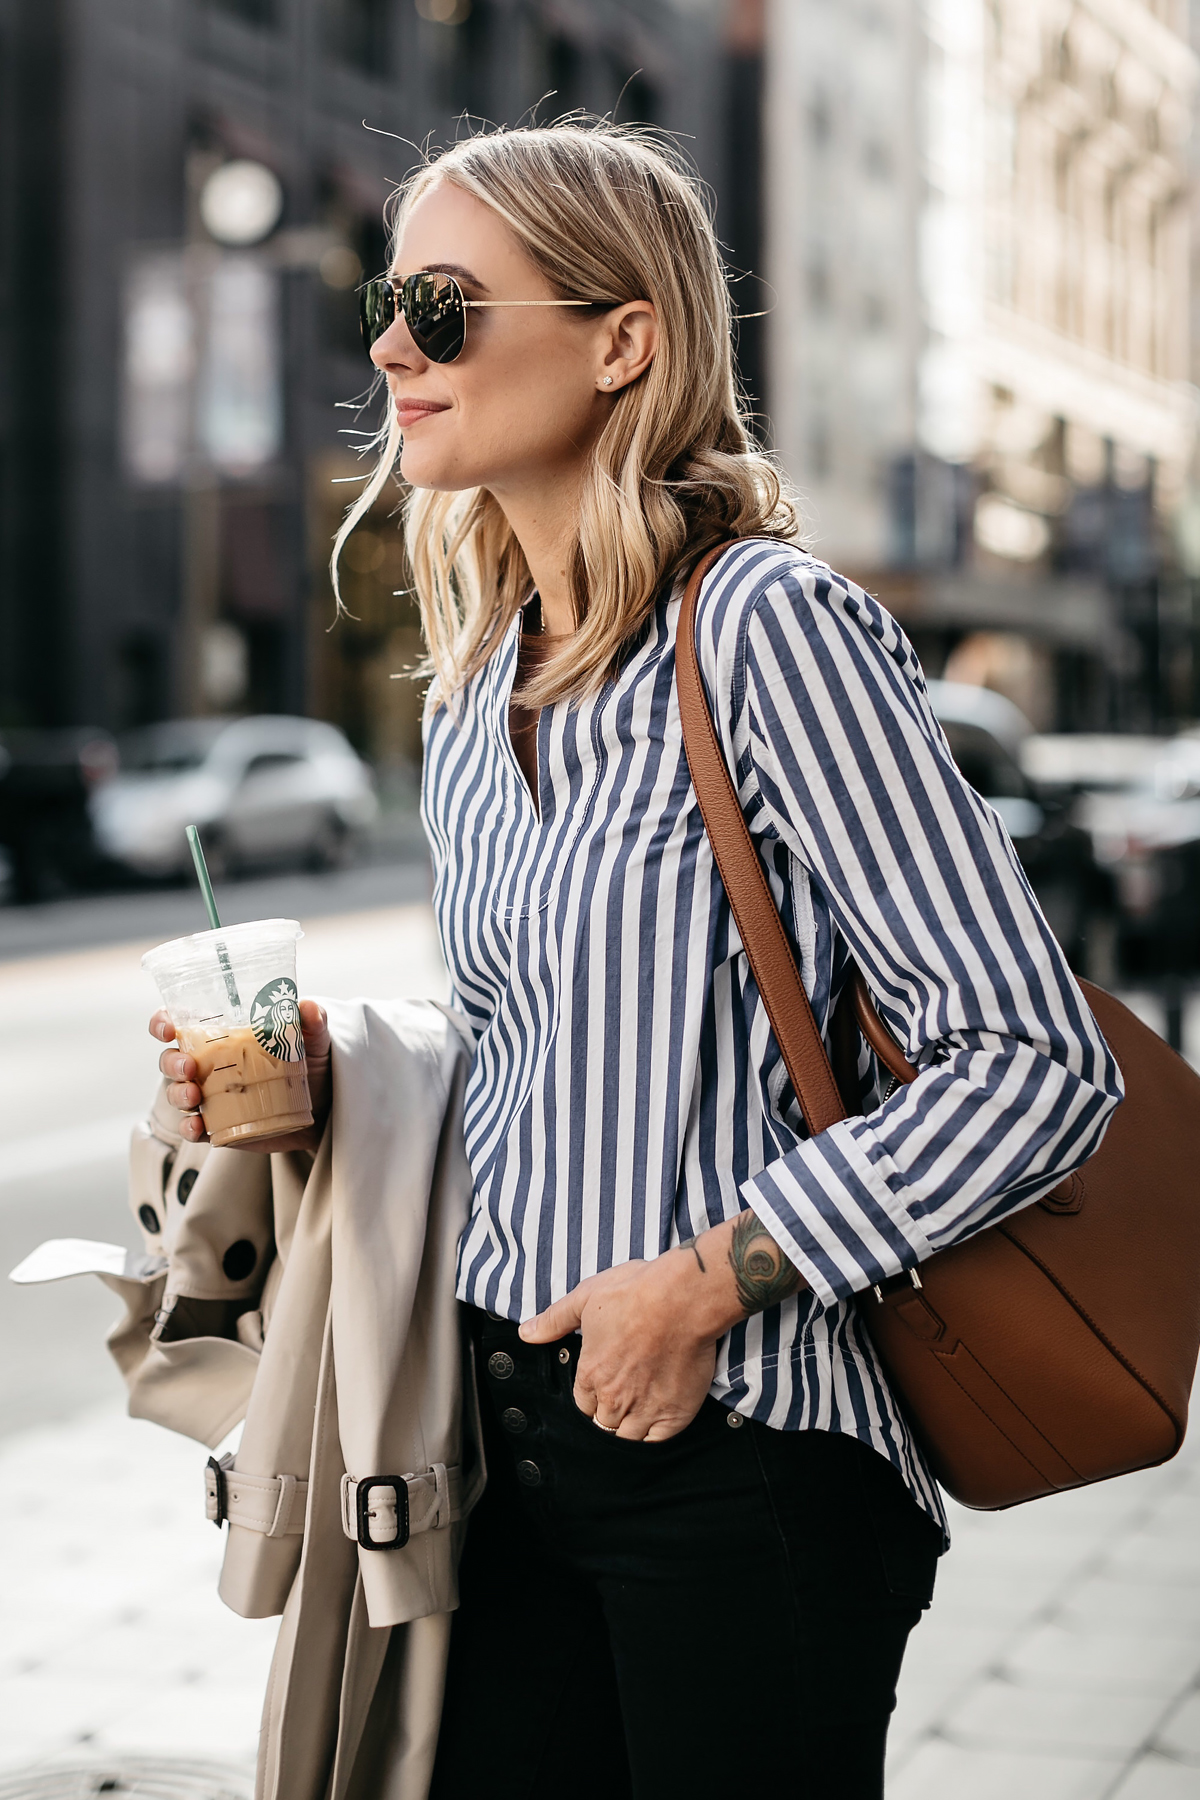 Blonde Woman Wearing Club Monaco Trench Coat Jcrew Blue White Stripe Top Givenchy Antigona Small Cognac Satchel Celine Aviator Sunglasses Fashion Jackson Dallas Blogger Fashion Blogger Street Style